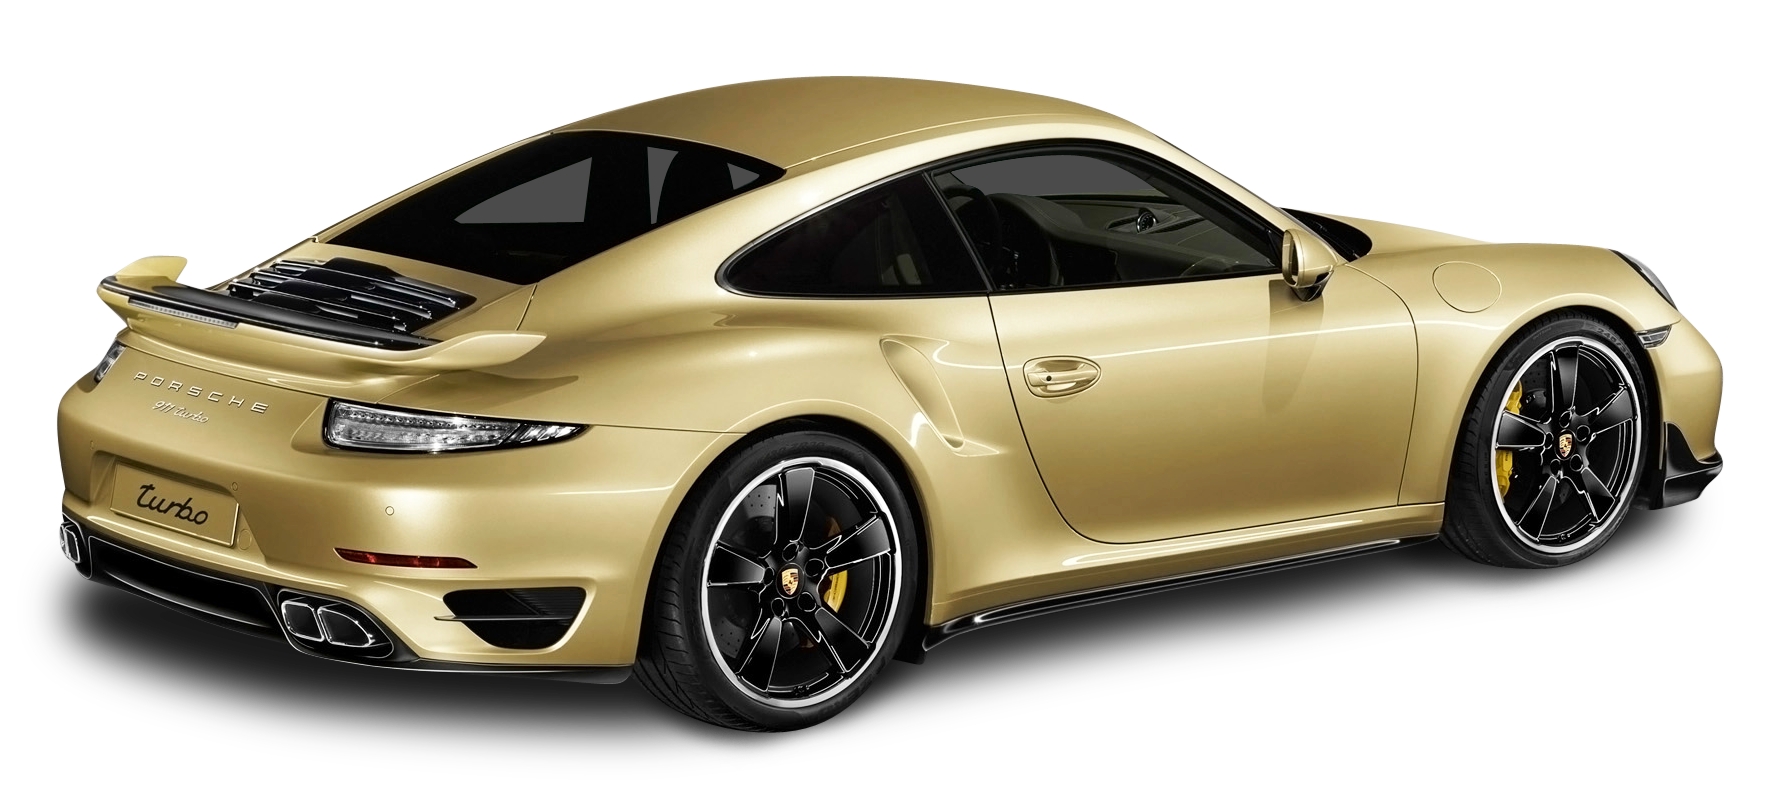 Gold car clipart clipart transparent library Porsche 911 Turbo Aerokit Gold Car PNG Image - PurePNG | Free ... clipart transparent library